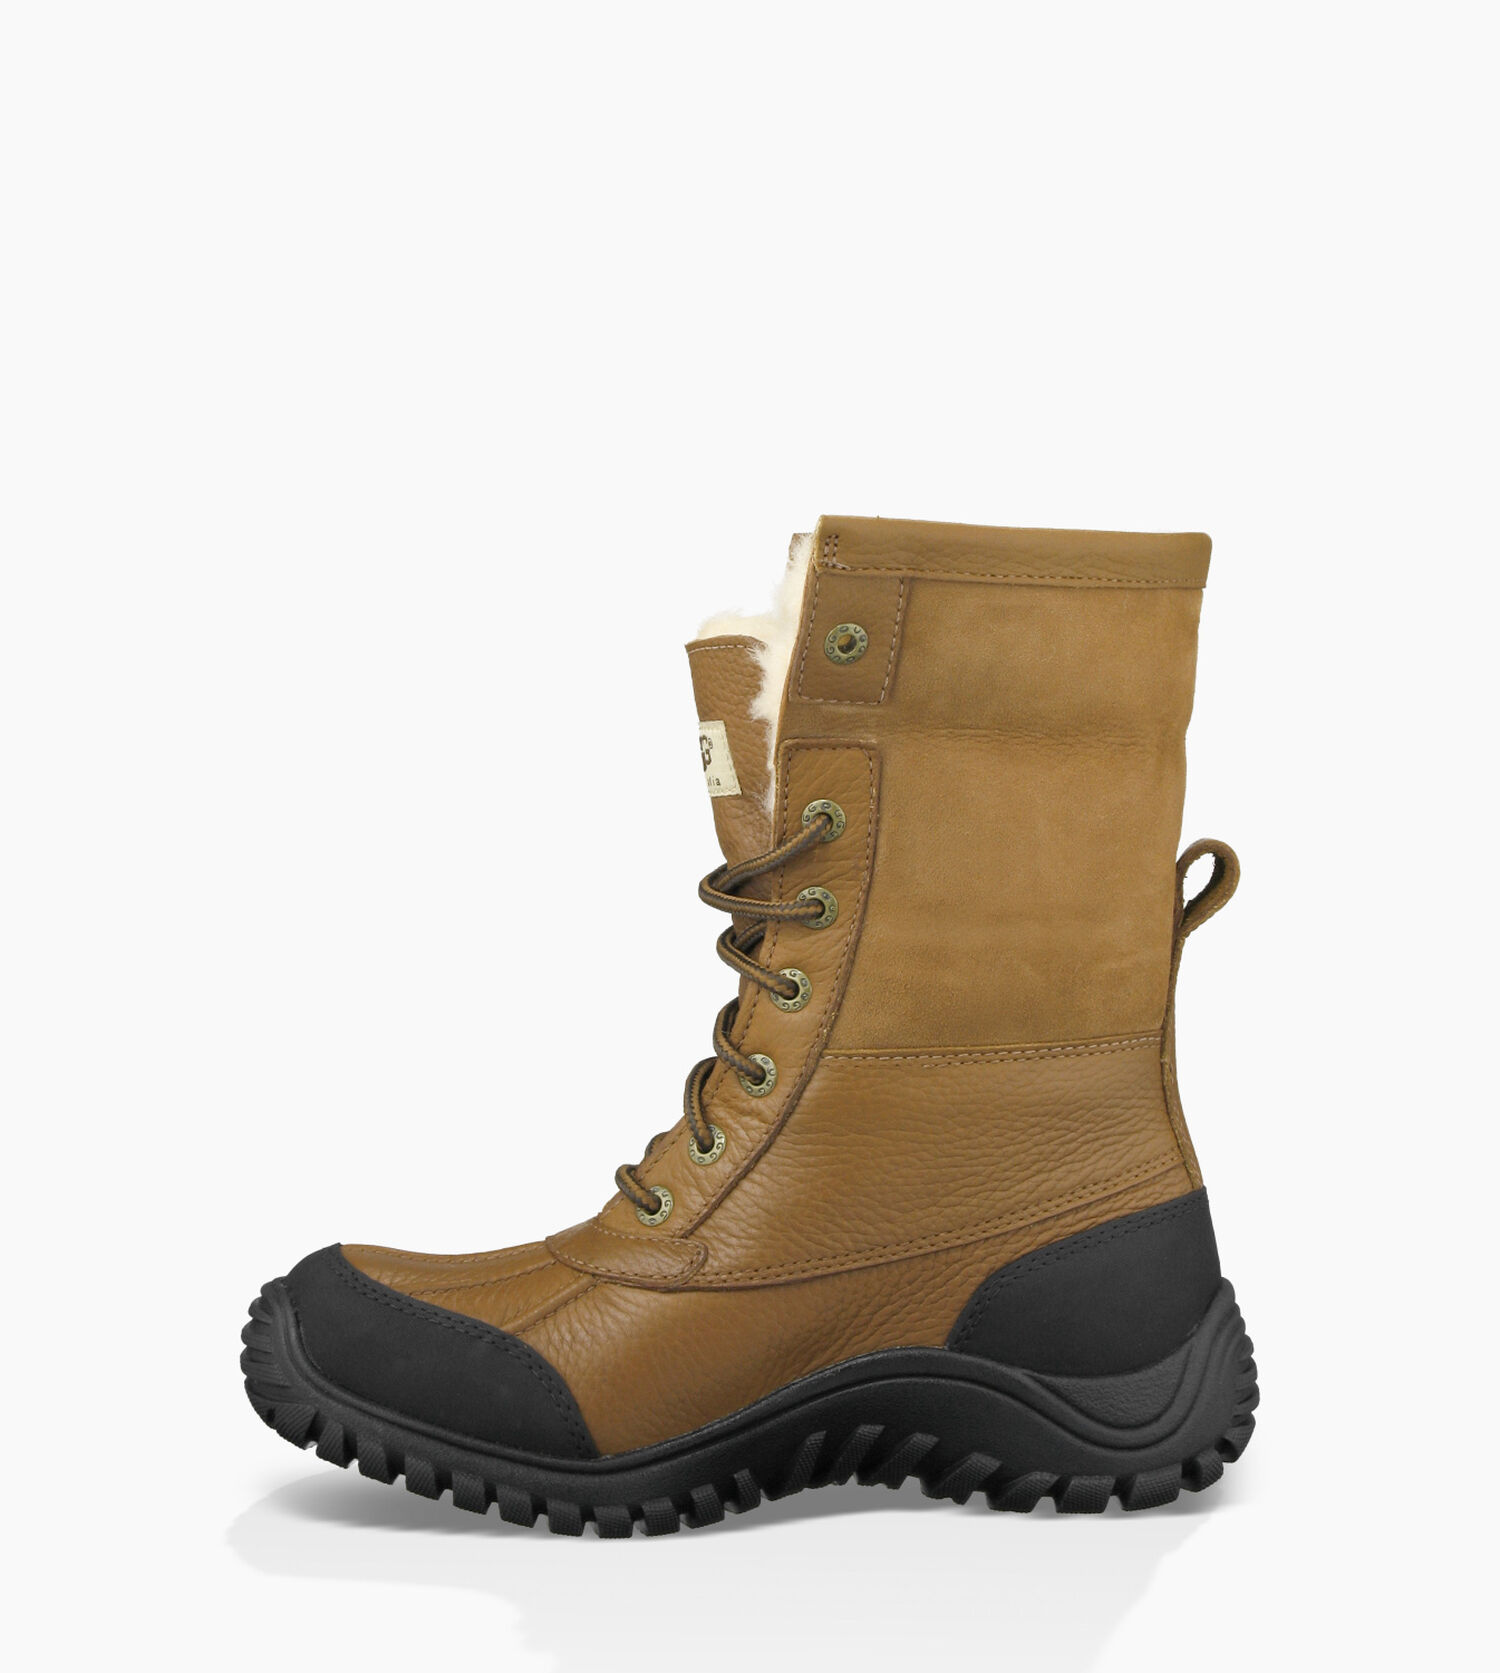 UGG® | Women's Adirondack Boot II Snow Boot | Free Shipping on UGG.com